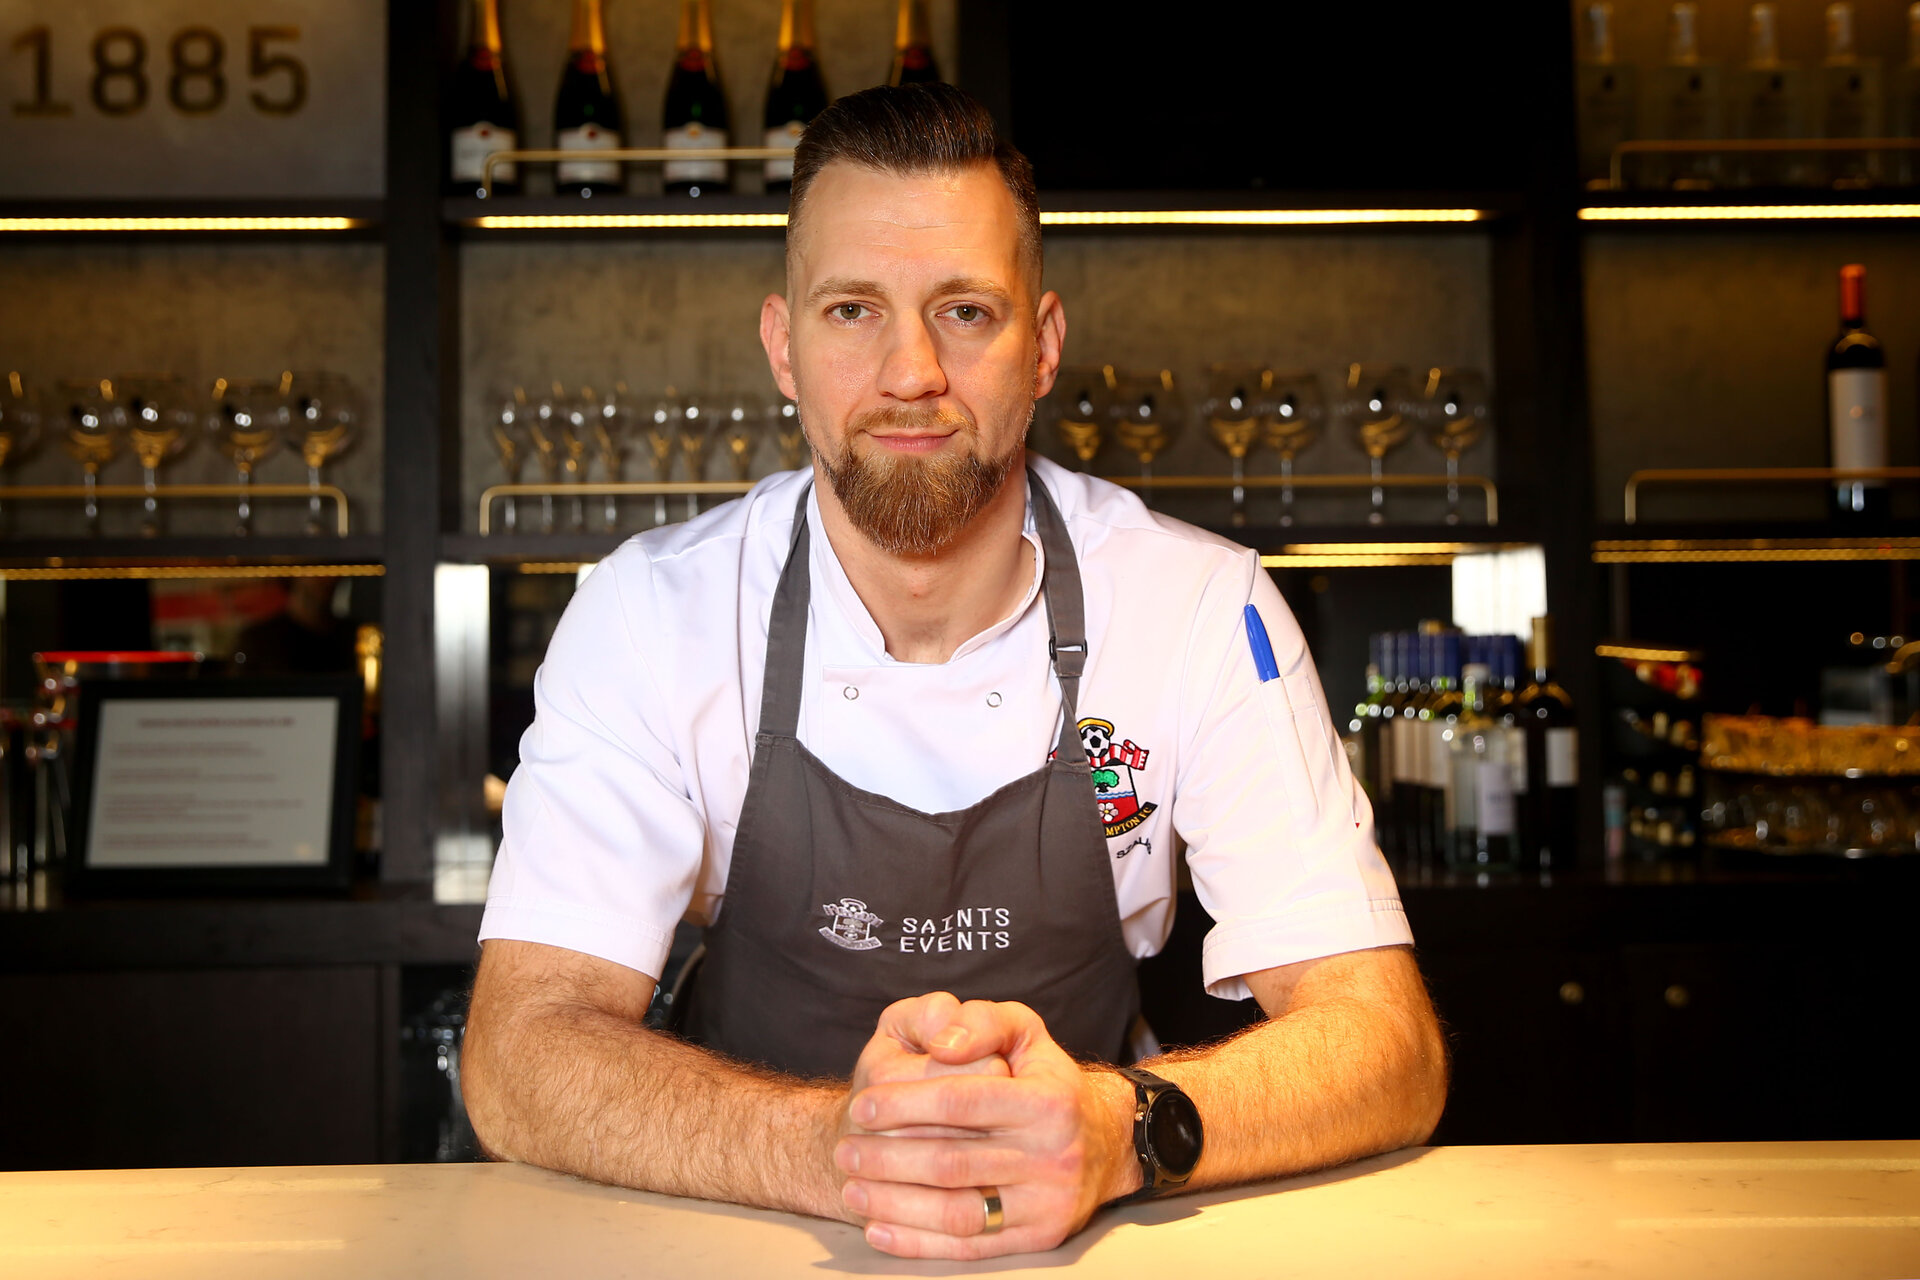 SOUTHAMPTON, ENGLAND - FEBRUARY 11: Zoltan Szalas new head chef photographs at St Mary's Stadium on February 12, 2020 in Southampton, England. (Photo by Isabelle Field/Southampton FC via Getty Images)